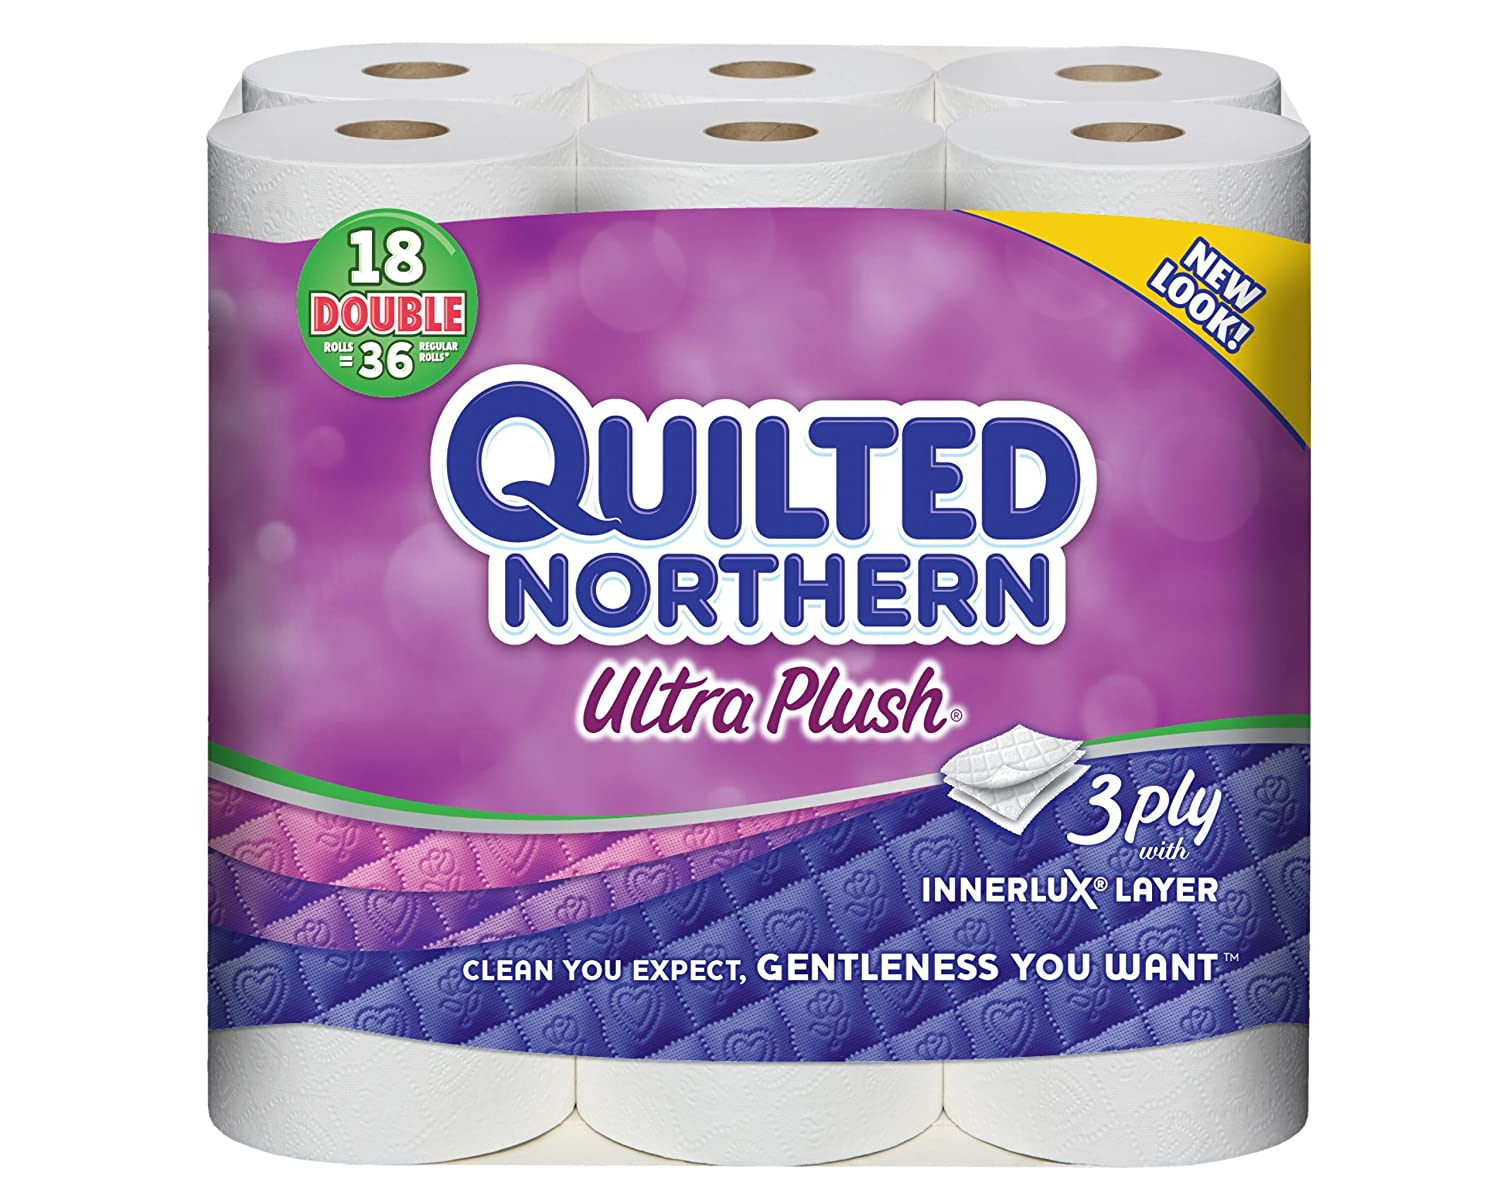 Amazon.com: Quilted Northern Ultra Plus Bath Tissue, 18 Double ... : coupons for quilted northern toilet paper - Adamdwight.com